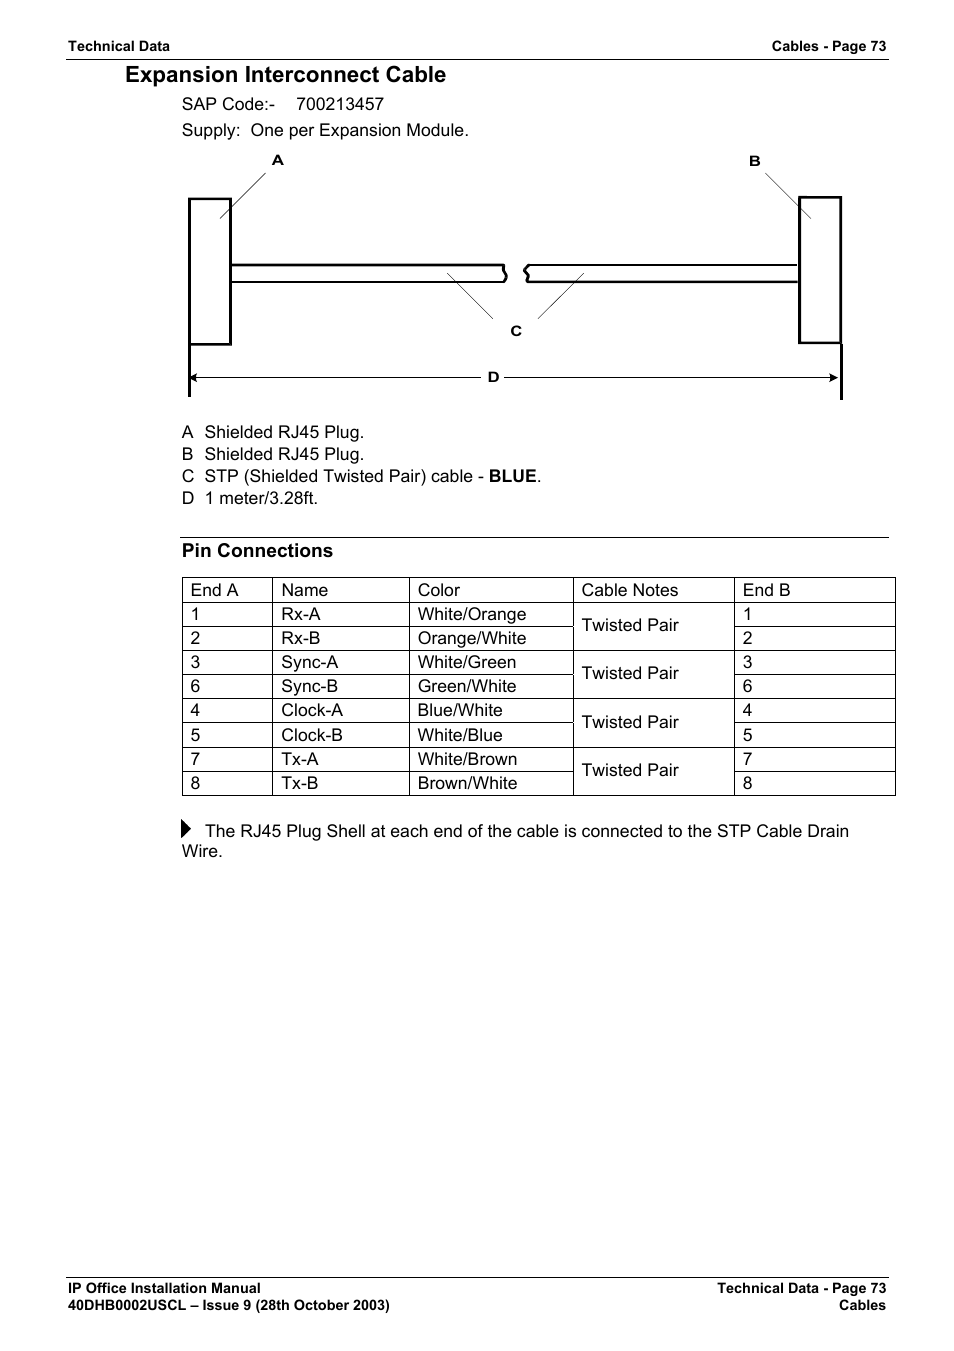 hight resolution of expansion interconnect cable pin connections avaya ip office phone user manual page 73 86